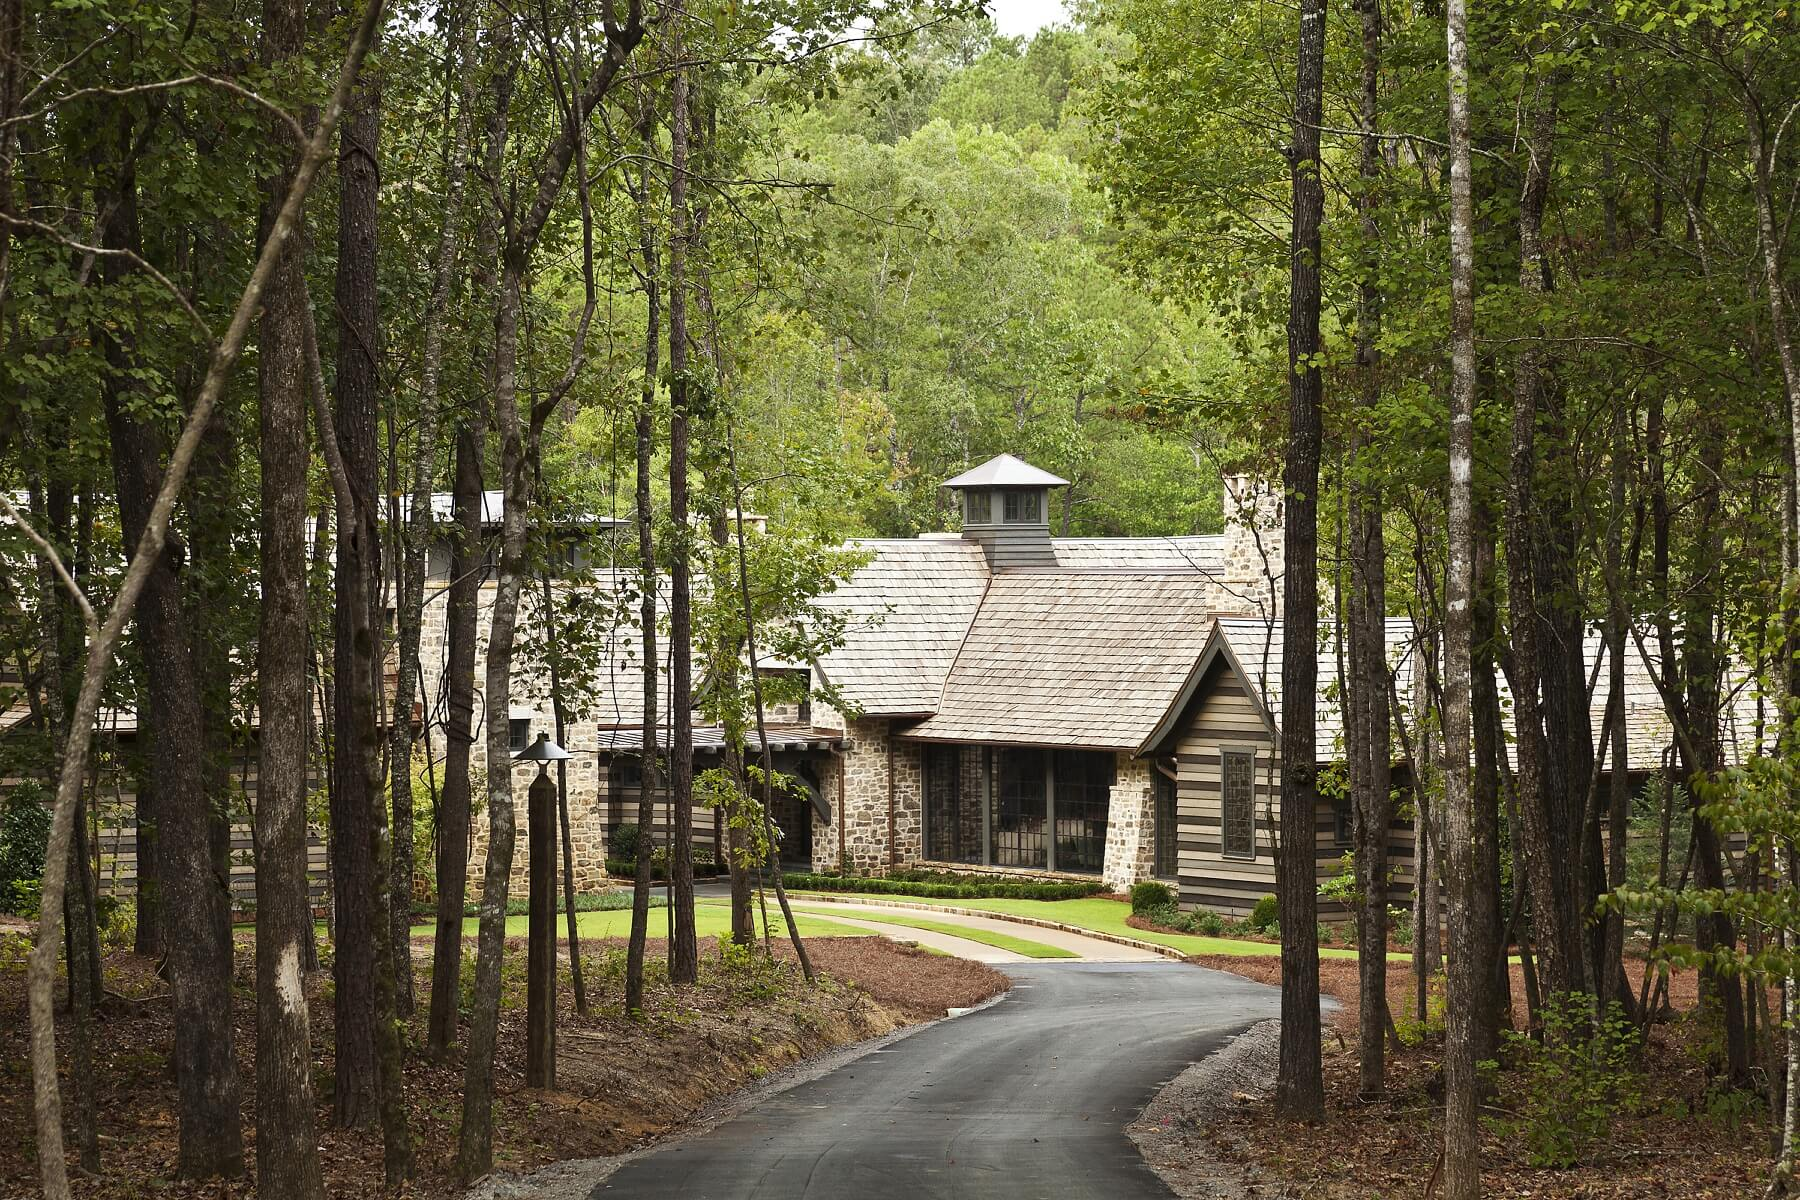 A long driveway winds toward the home, which is tucked among the trees.